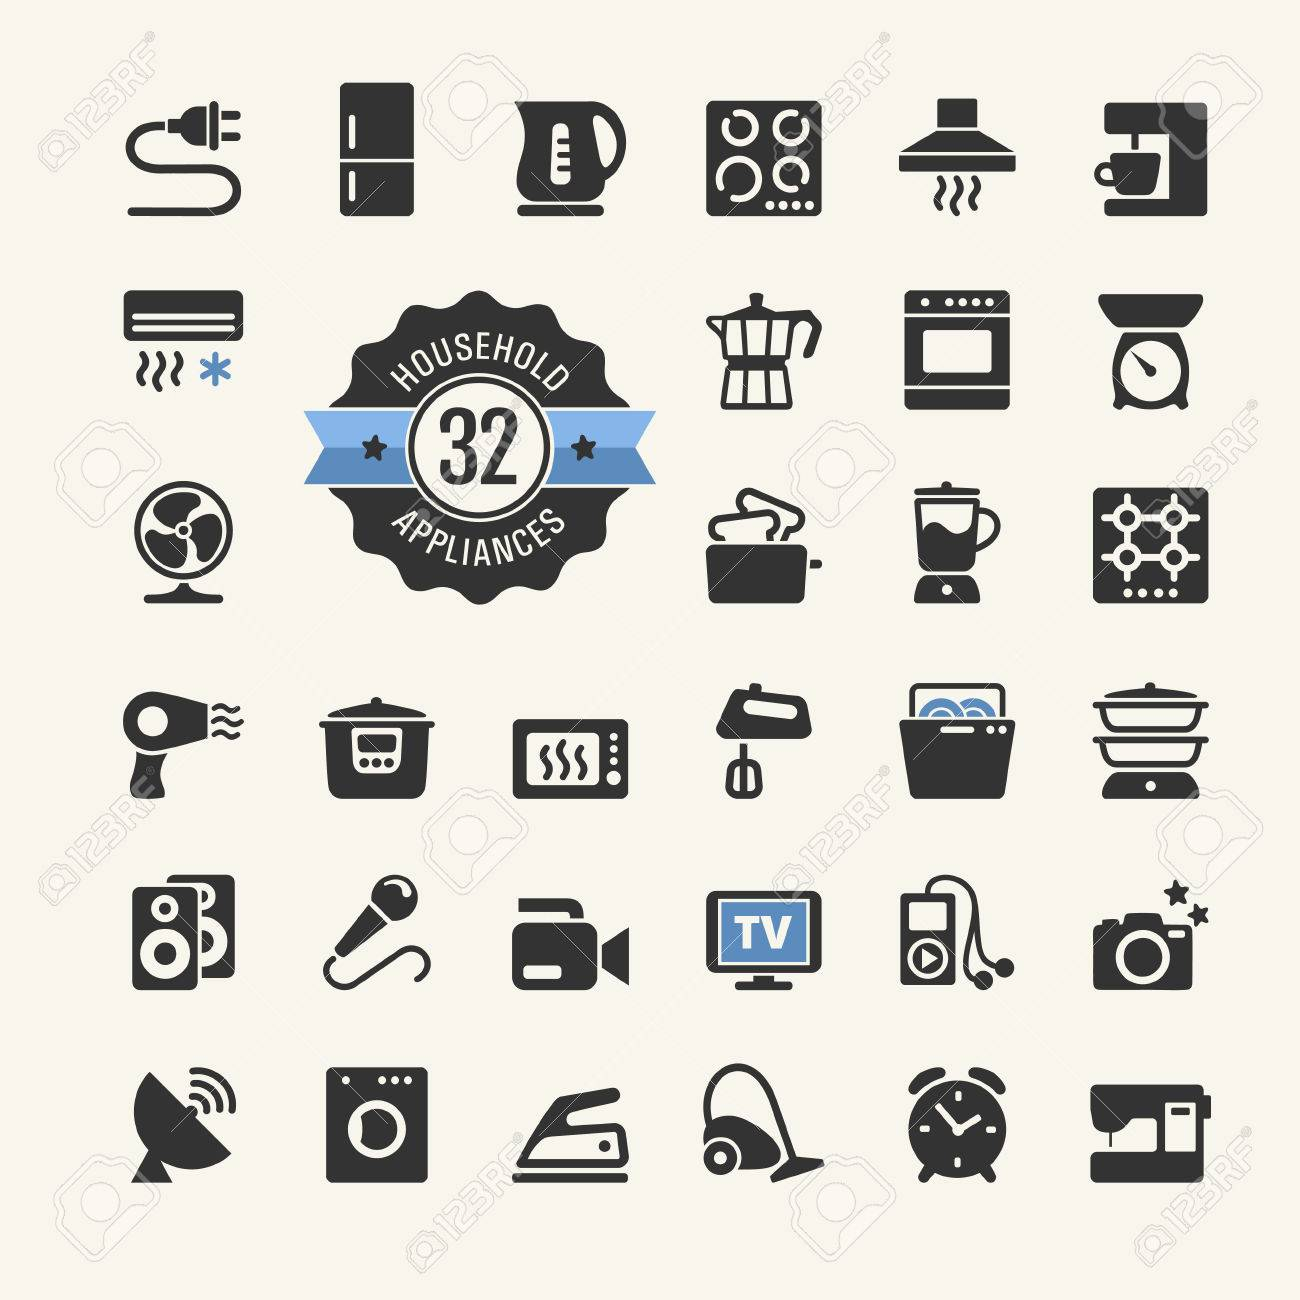 Web icon collection - household appliances - 35355227